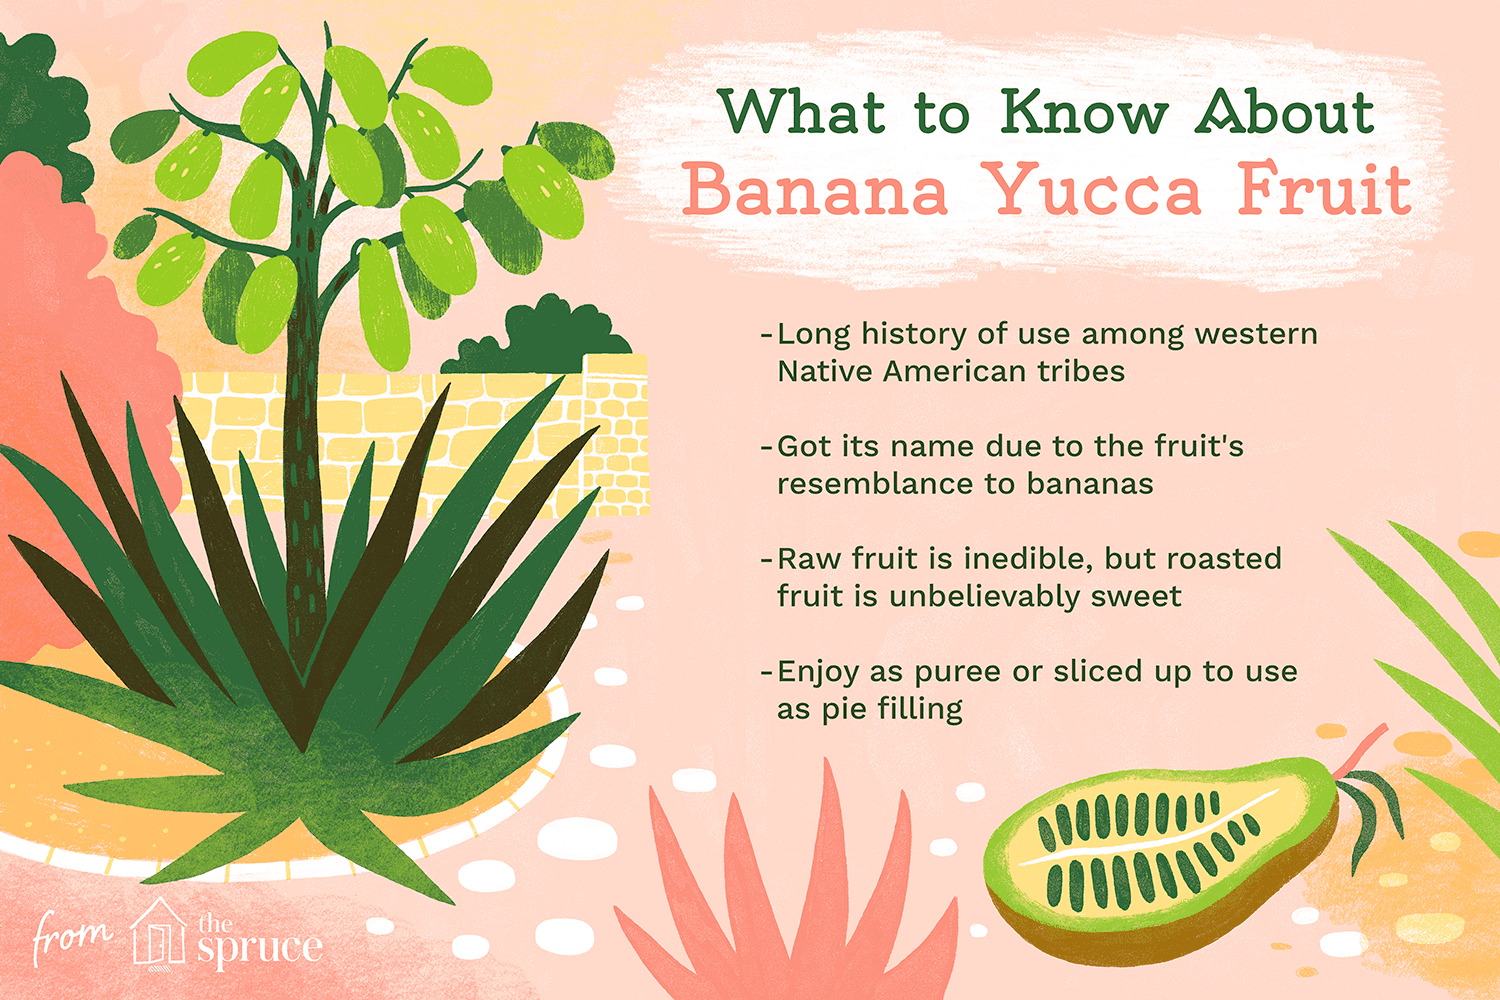 illustration with facts about banana yucca fruit